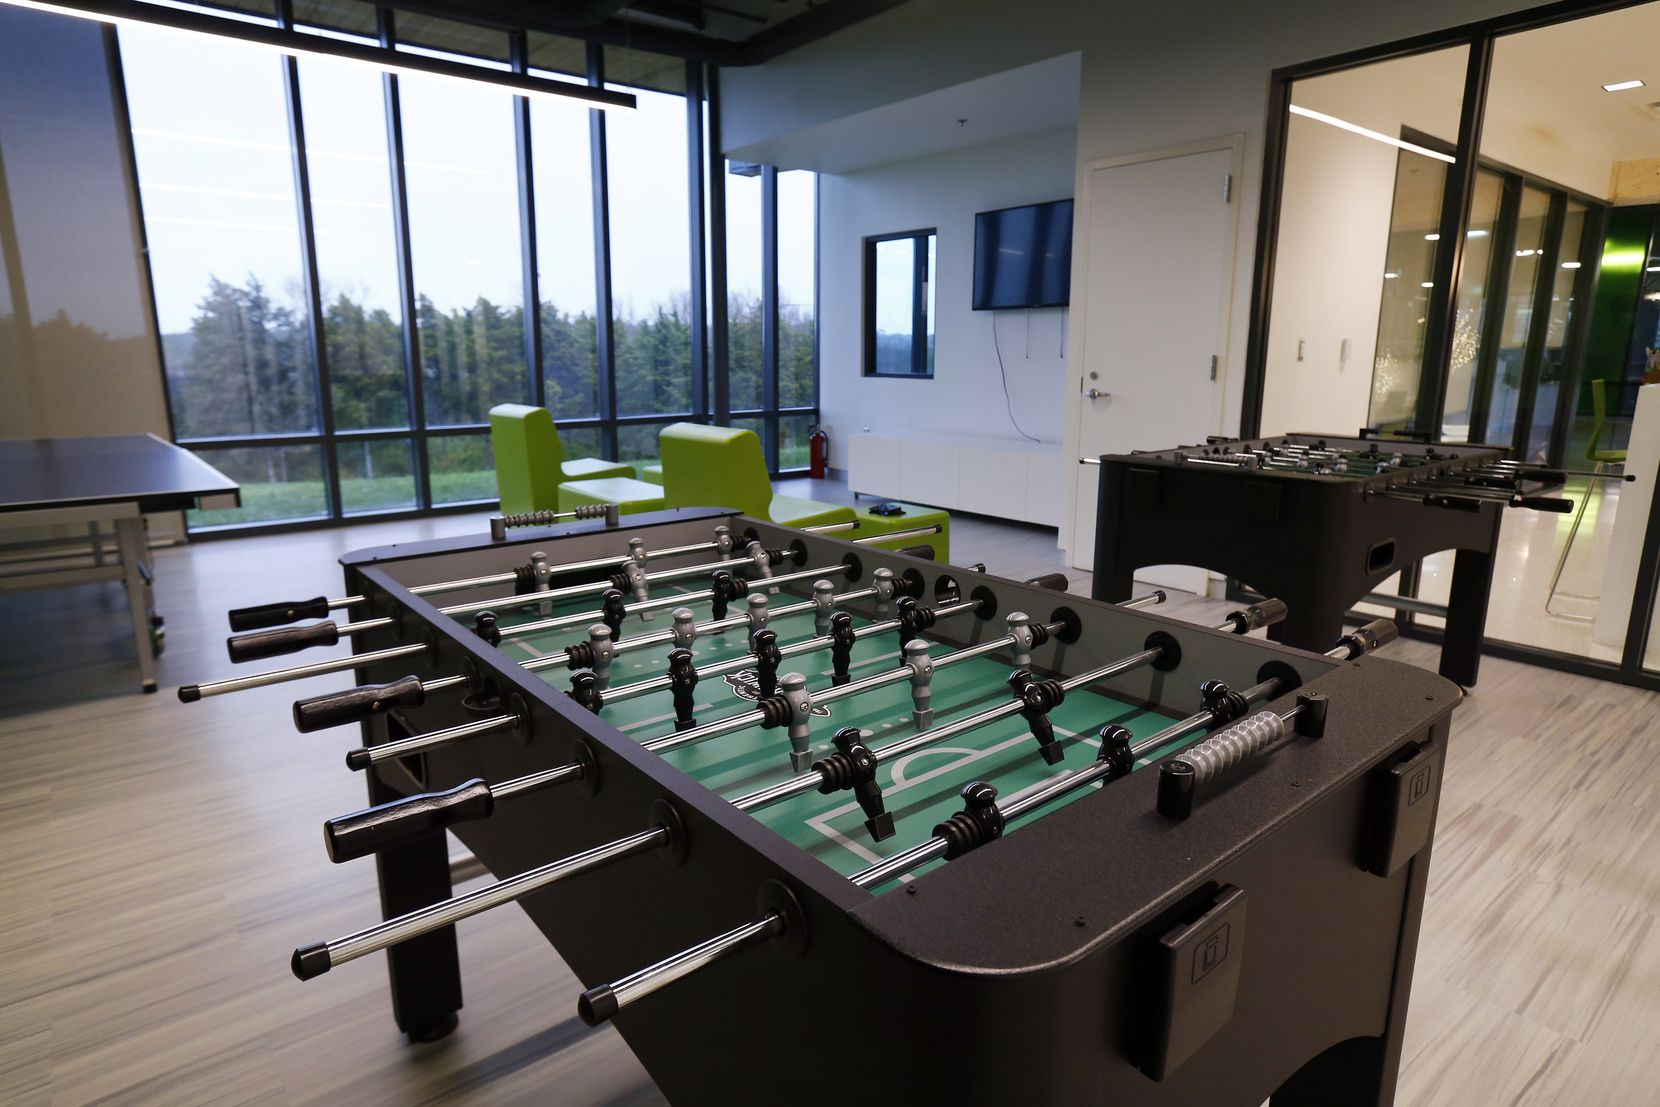 One of the game rooms inside the newly opened Singing Hills Recreation Center in Oak Cliff. At present, capacity in various areas of the center must remain capped at 25%.